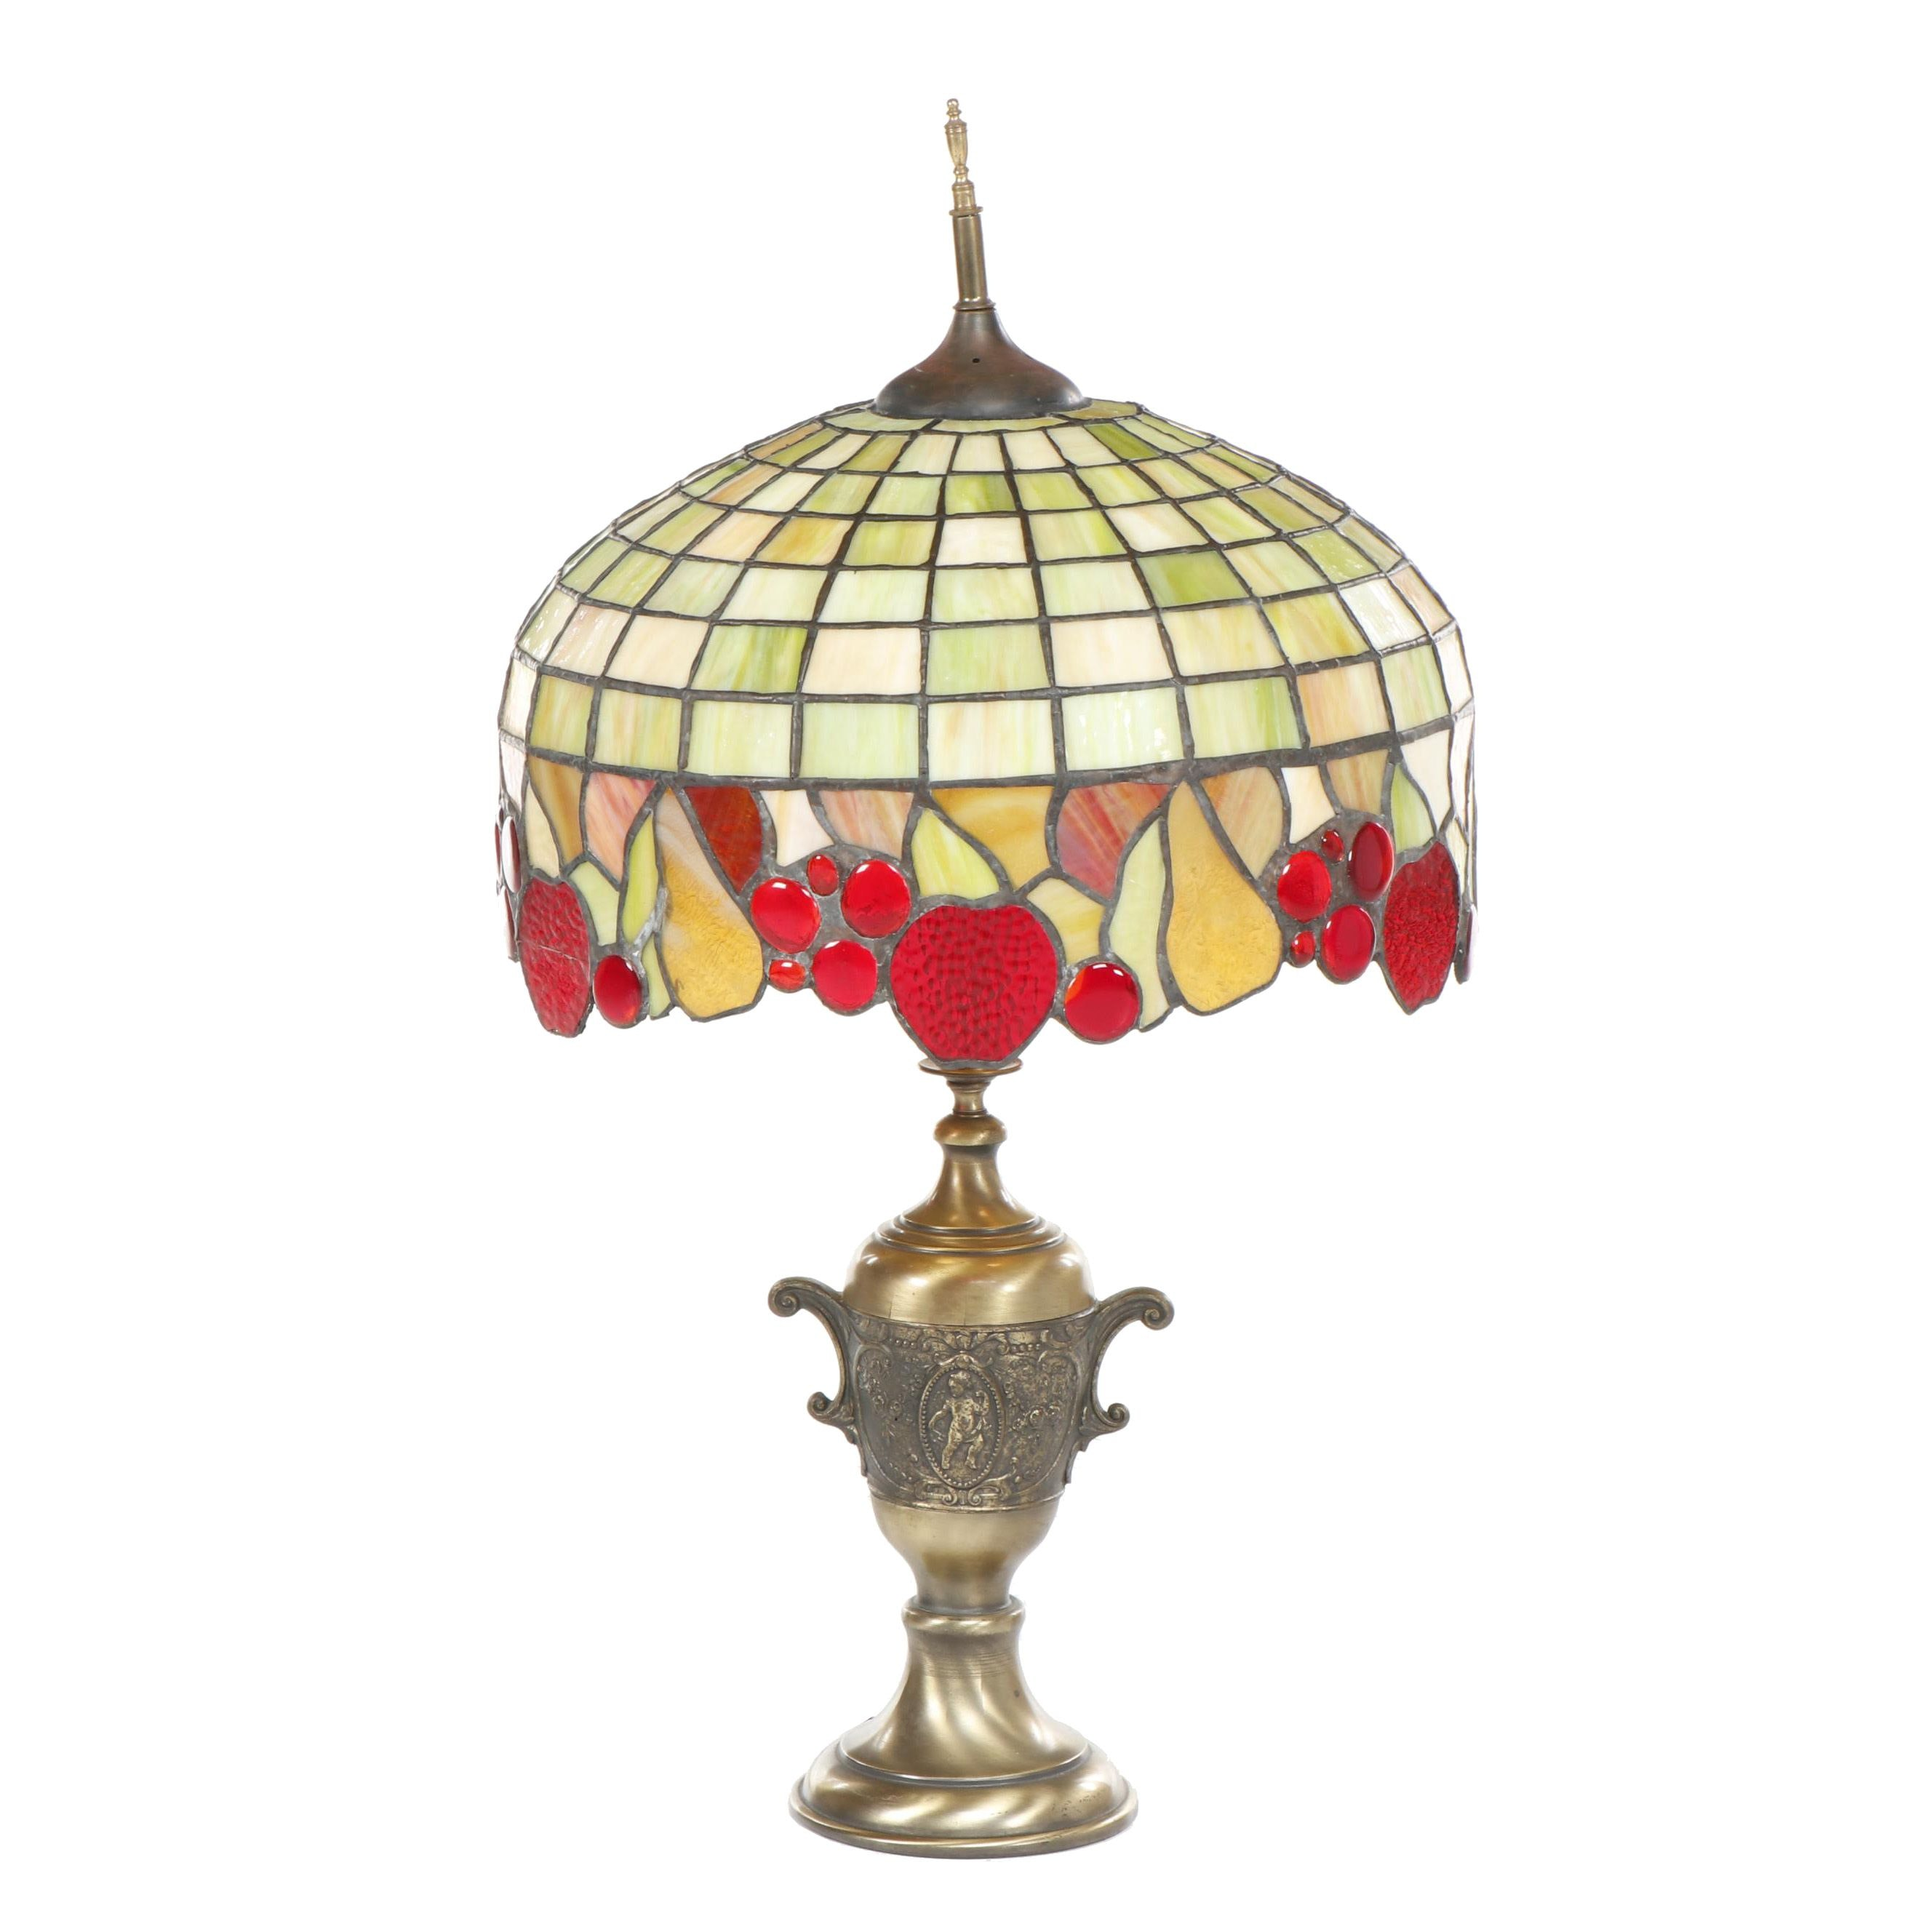 Neoclassical Style Brass Table Lamp with Slag and Stained Glass Fruit Shade